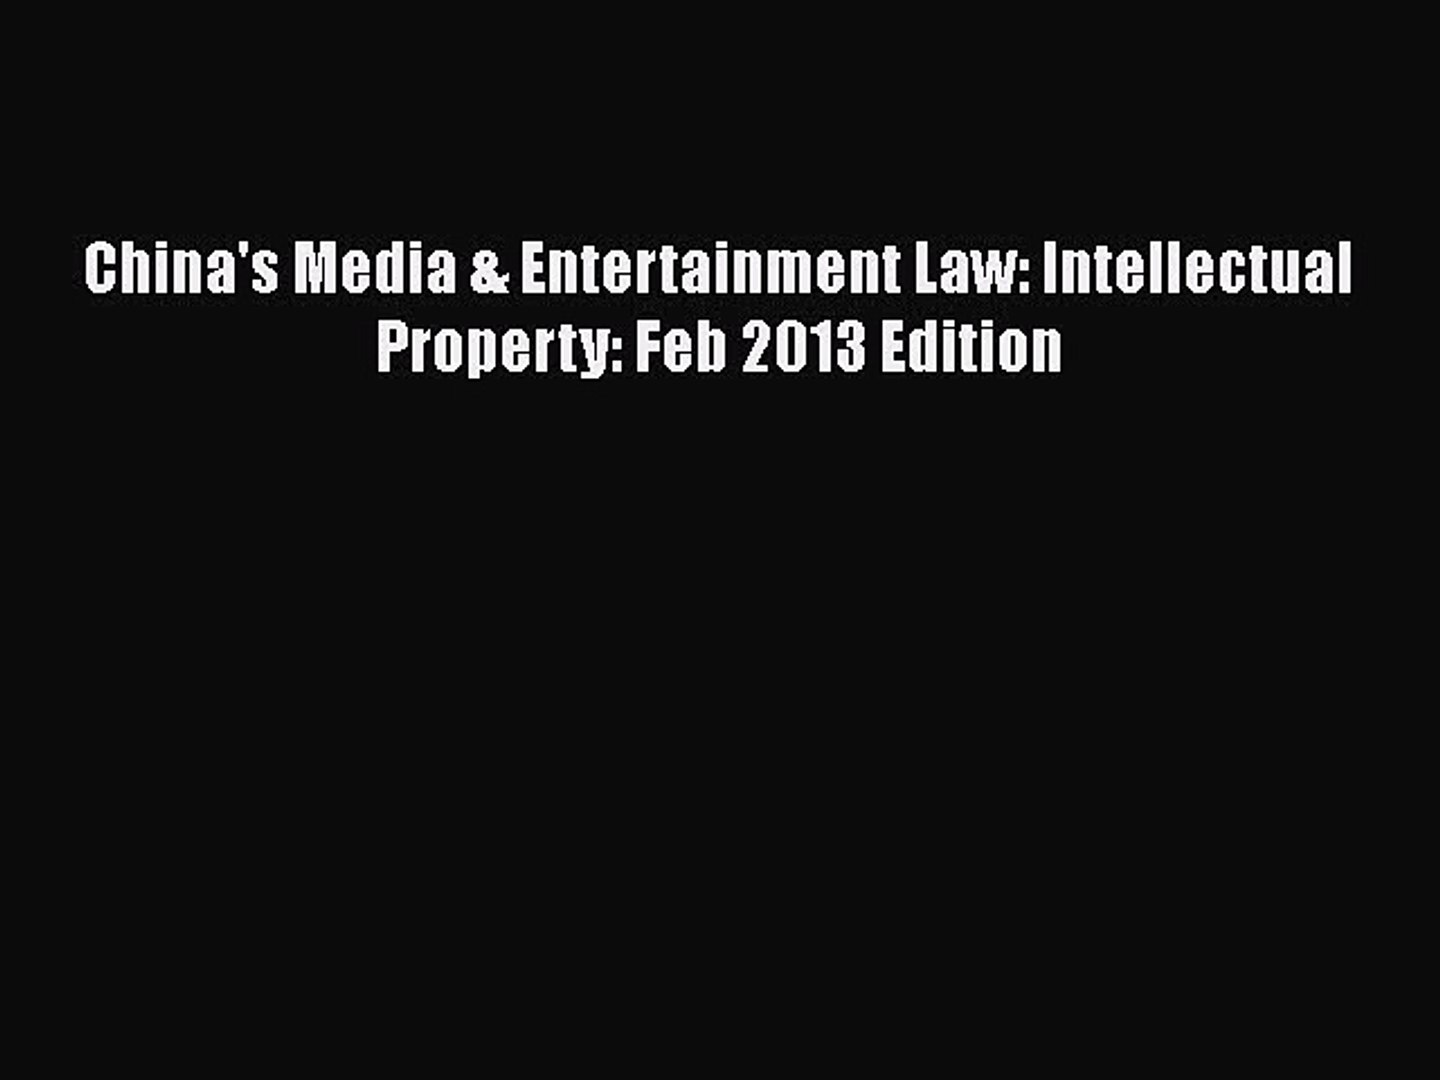 Chinas Media & Entertainment Law: Intellectual Property: Feb 2013 Edition